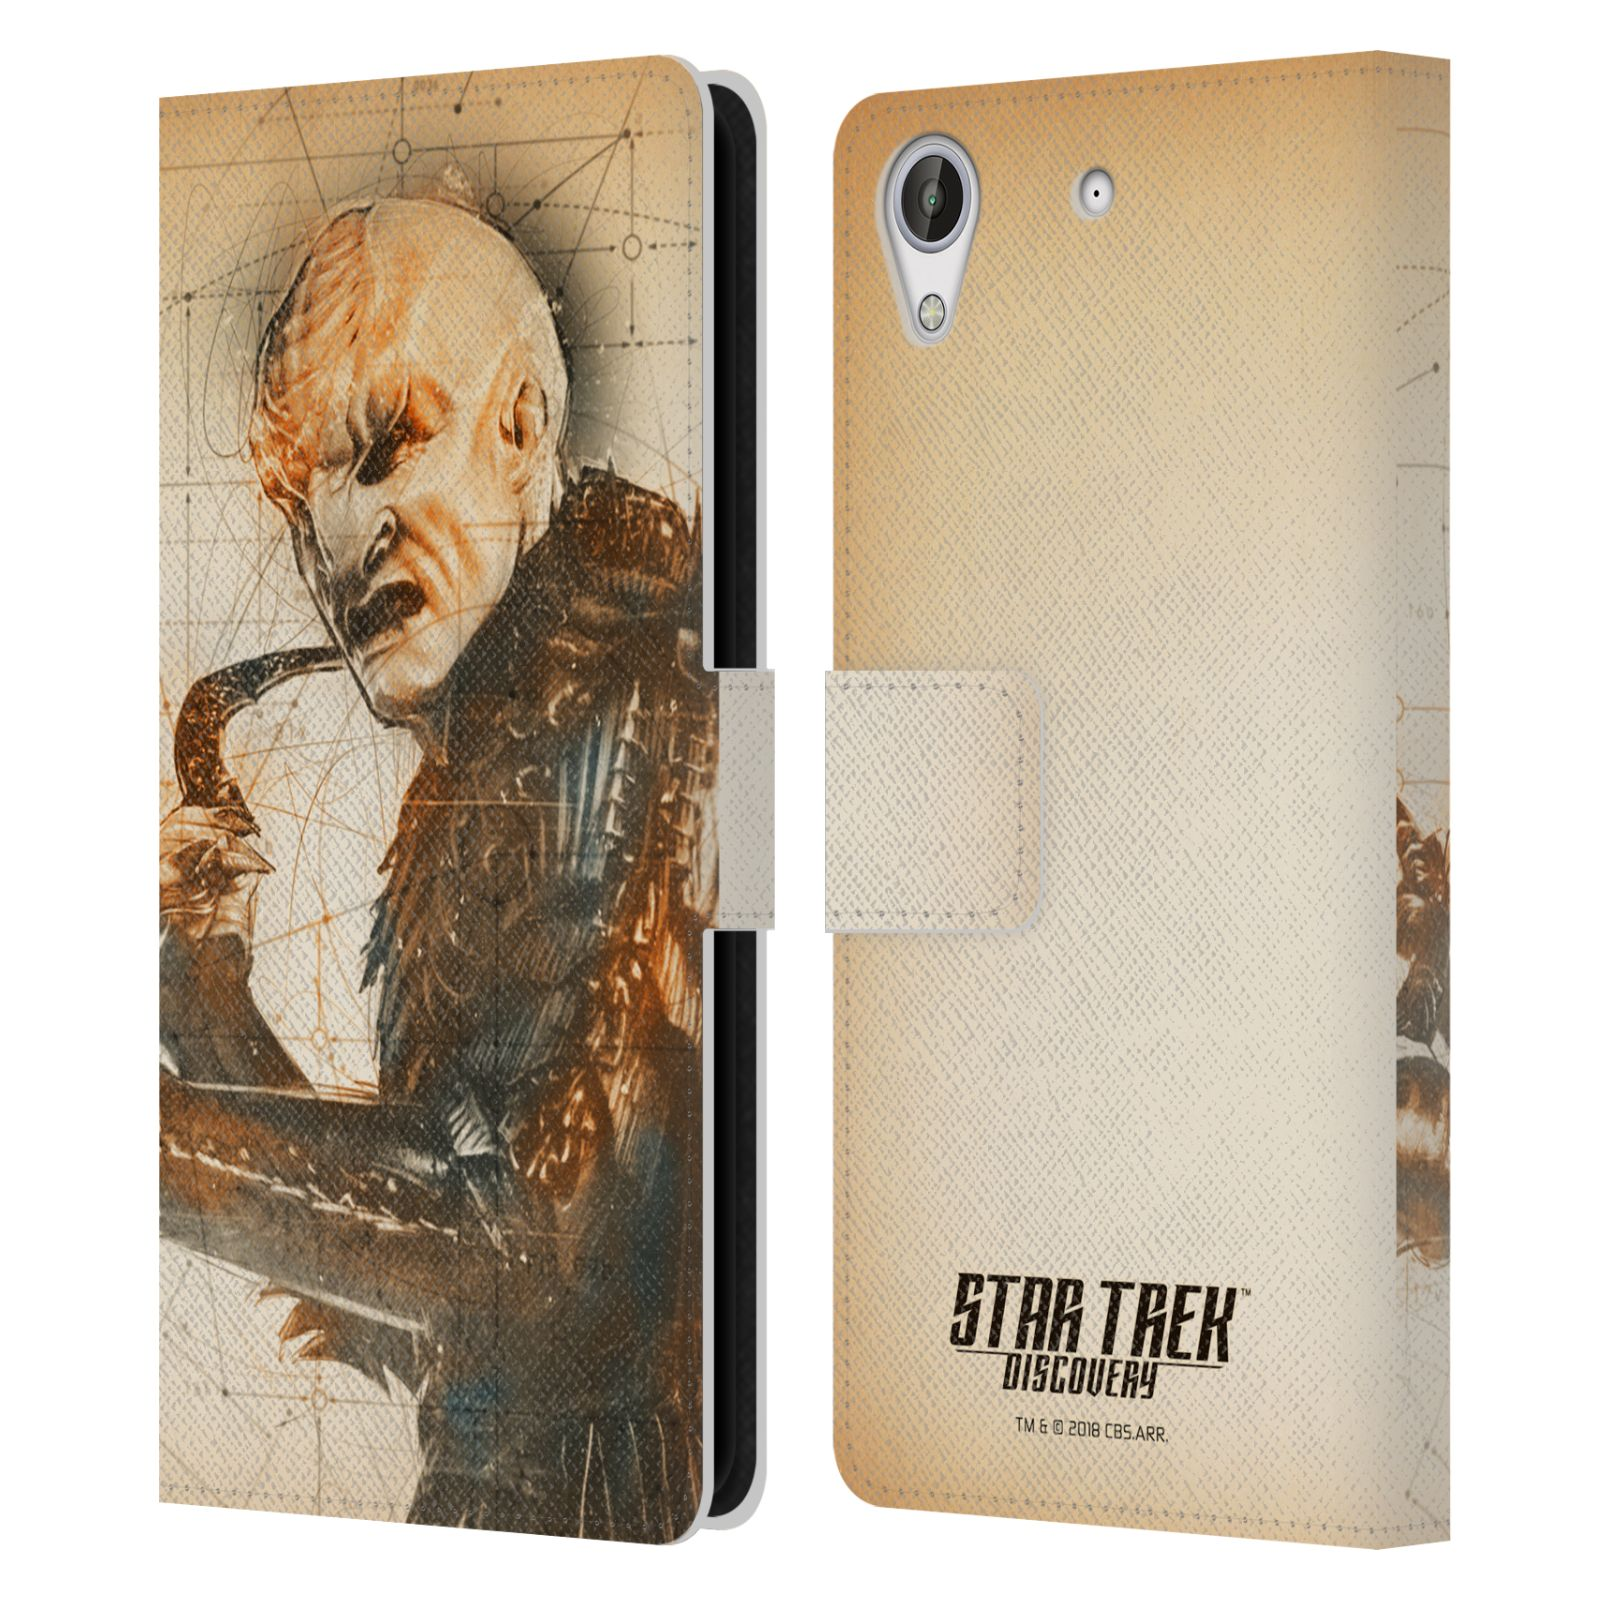 STAR-TREK-DISCOVERY-GRUNGE-CHARACTERS-LEATHER-BOOK-WALLET-CASE-FOR-HTC-PHONES-2